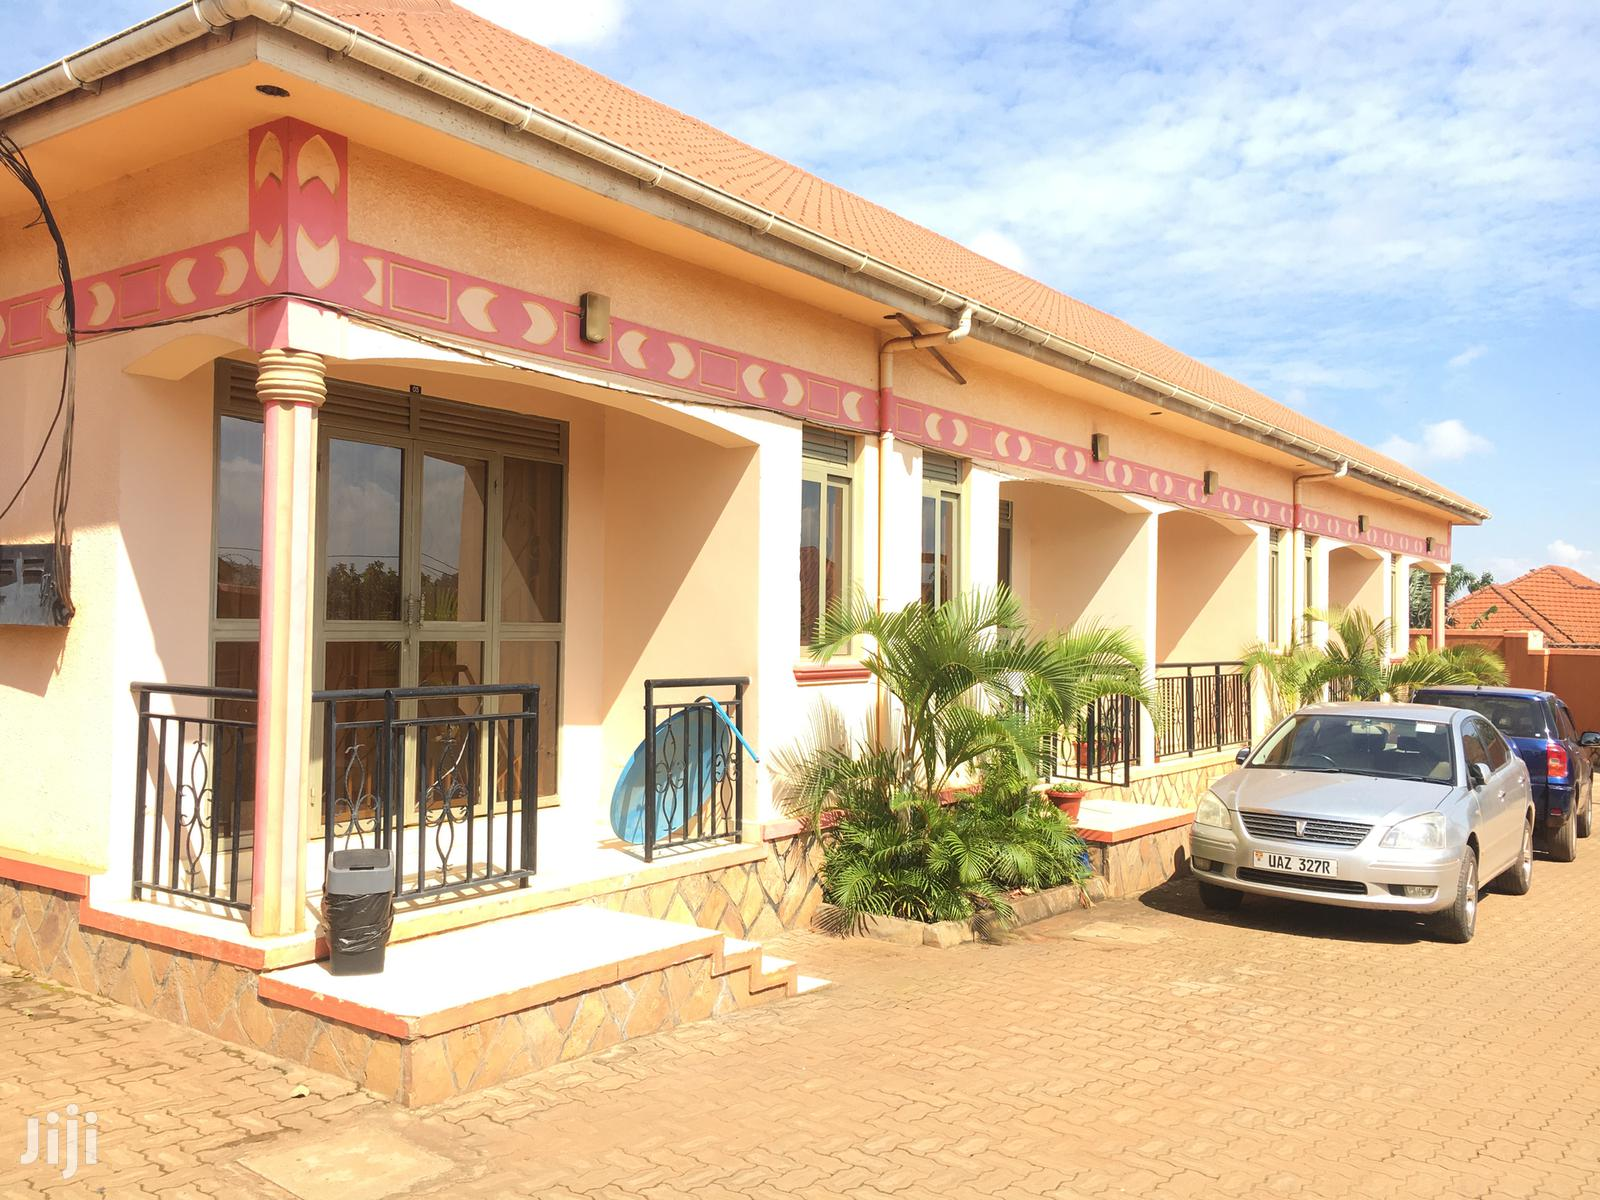 House For Rent House Double Room Self Contained In Kisaasi